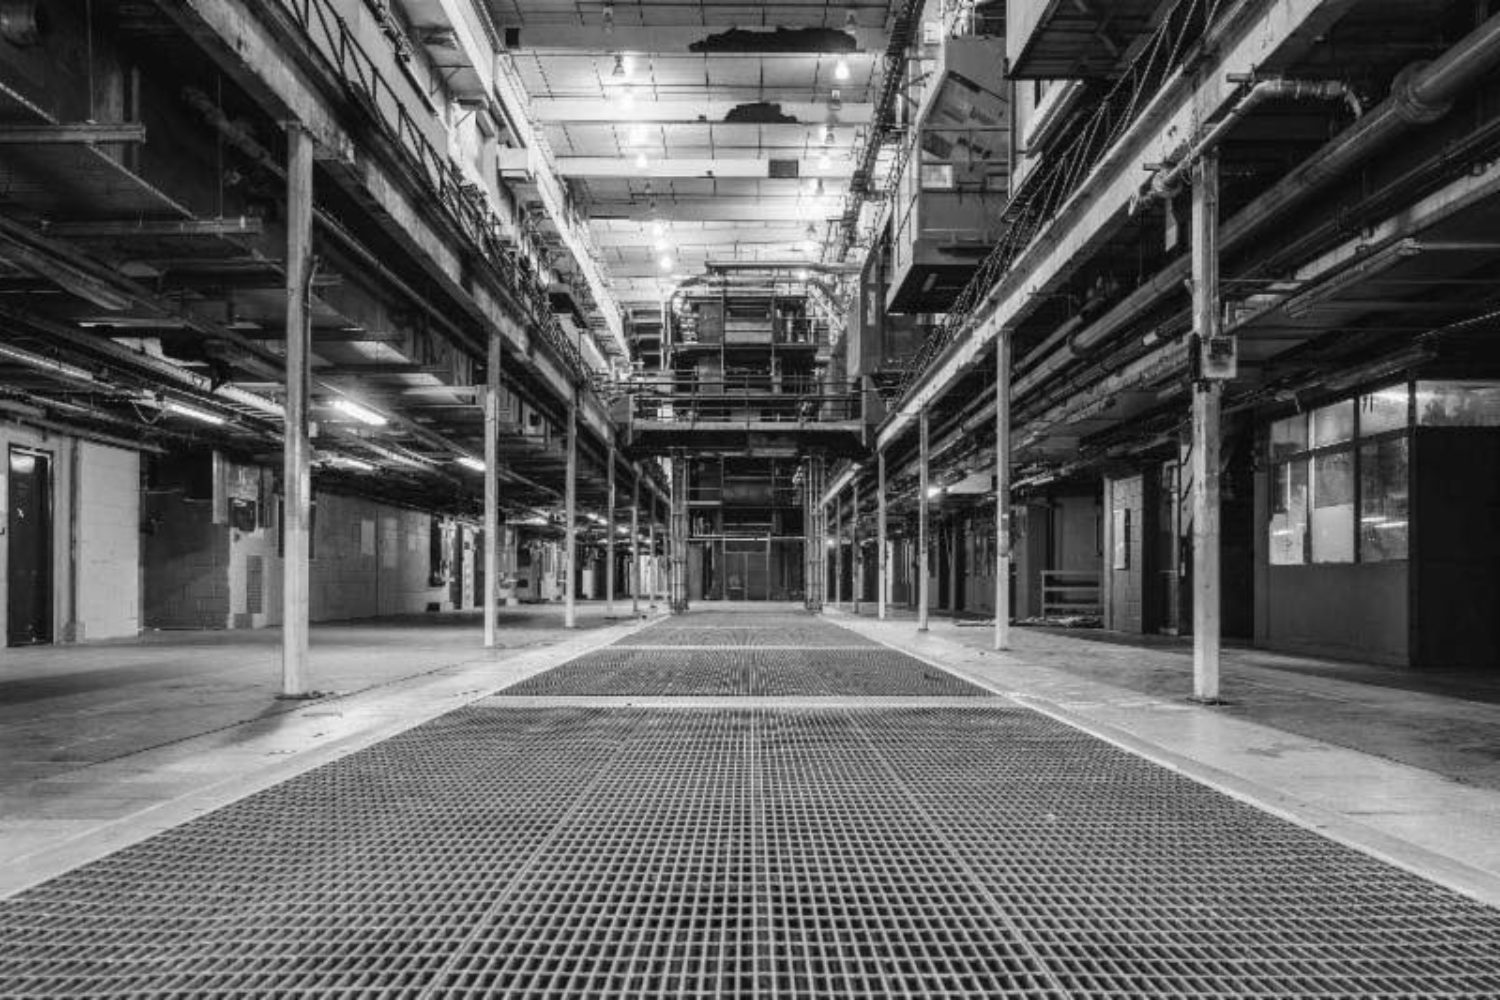 A new, 5,000 capacity London venue has been launched